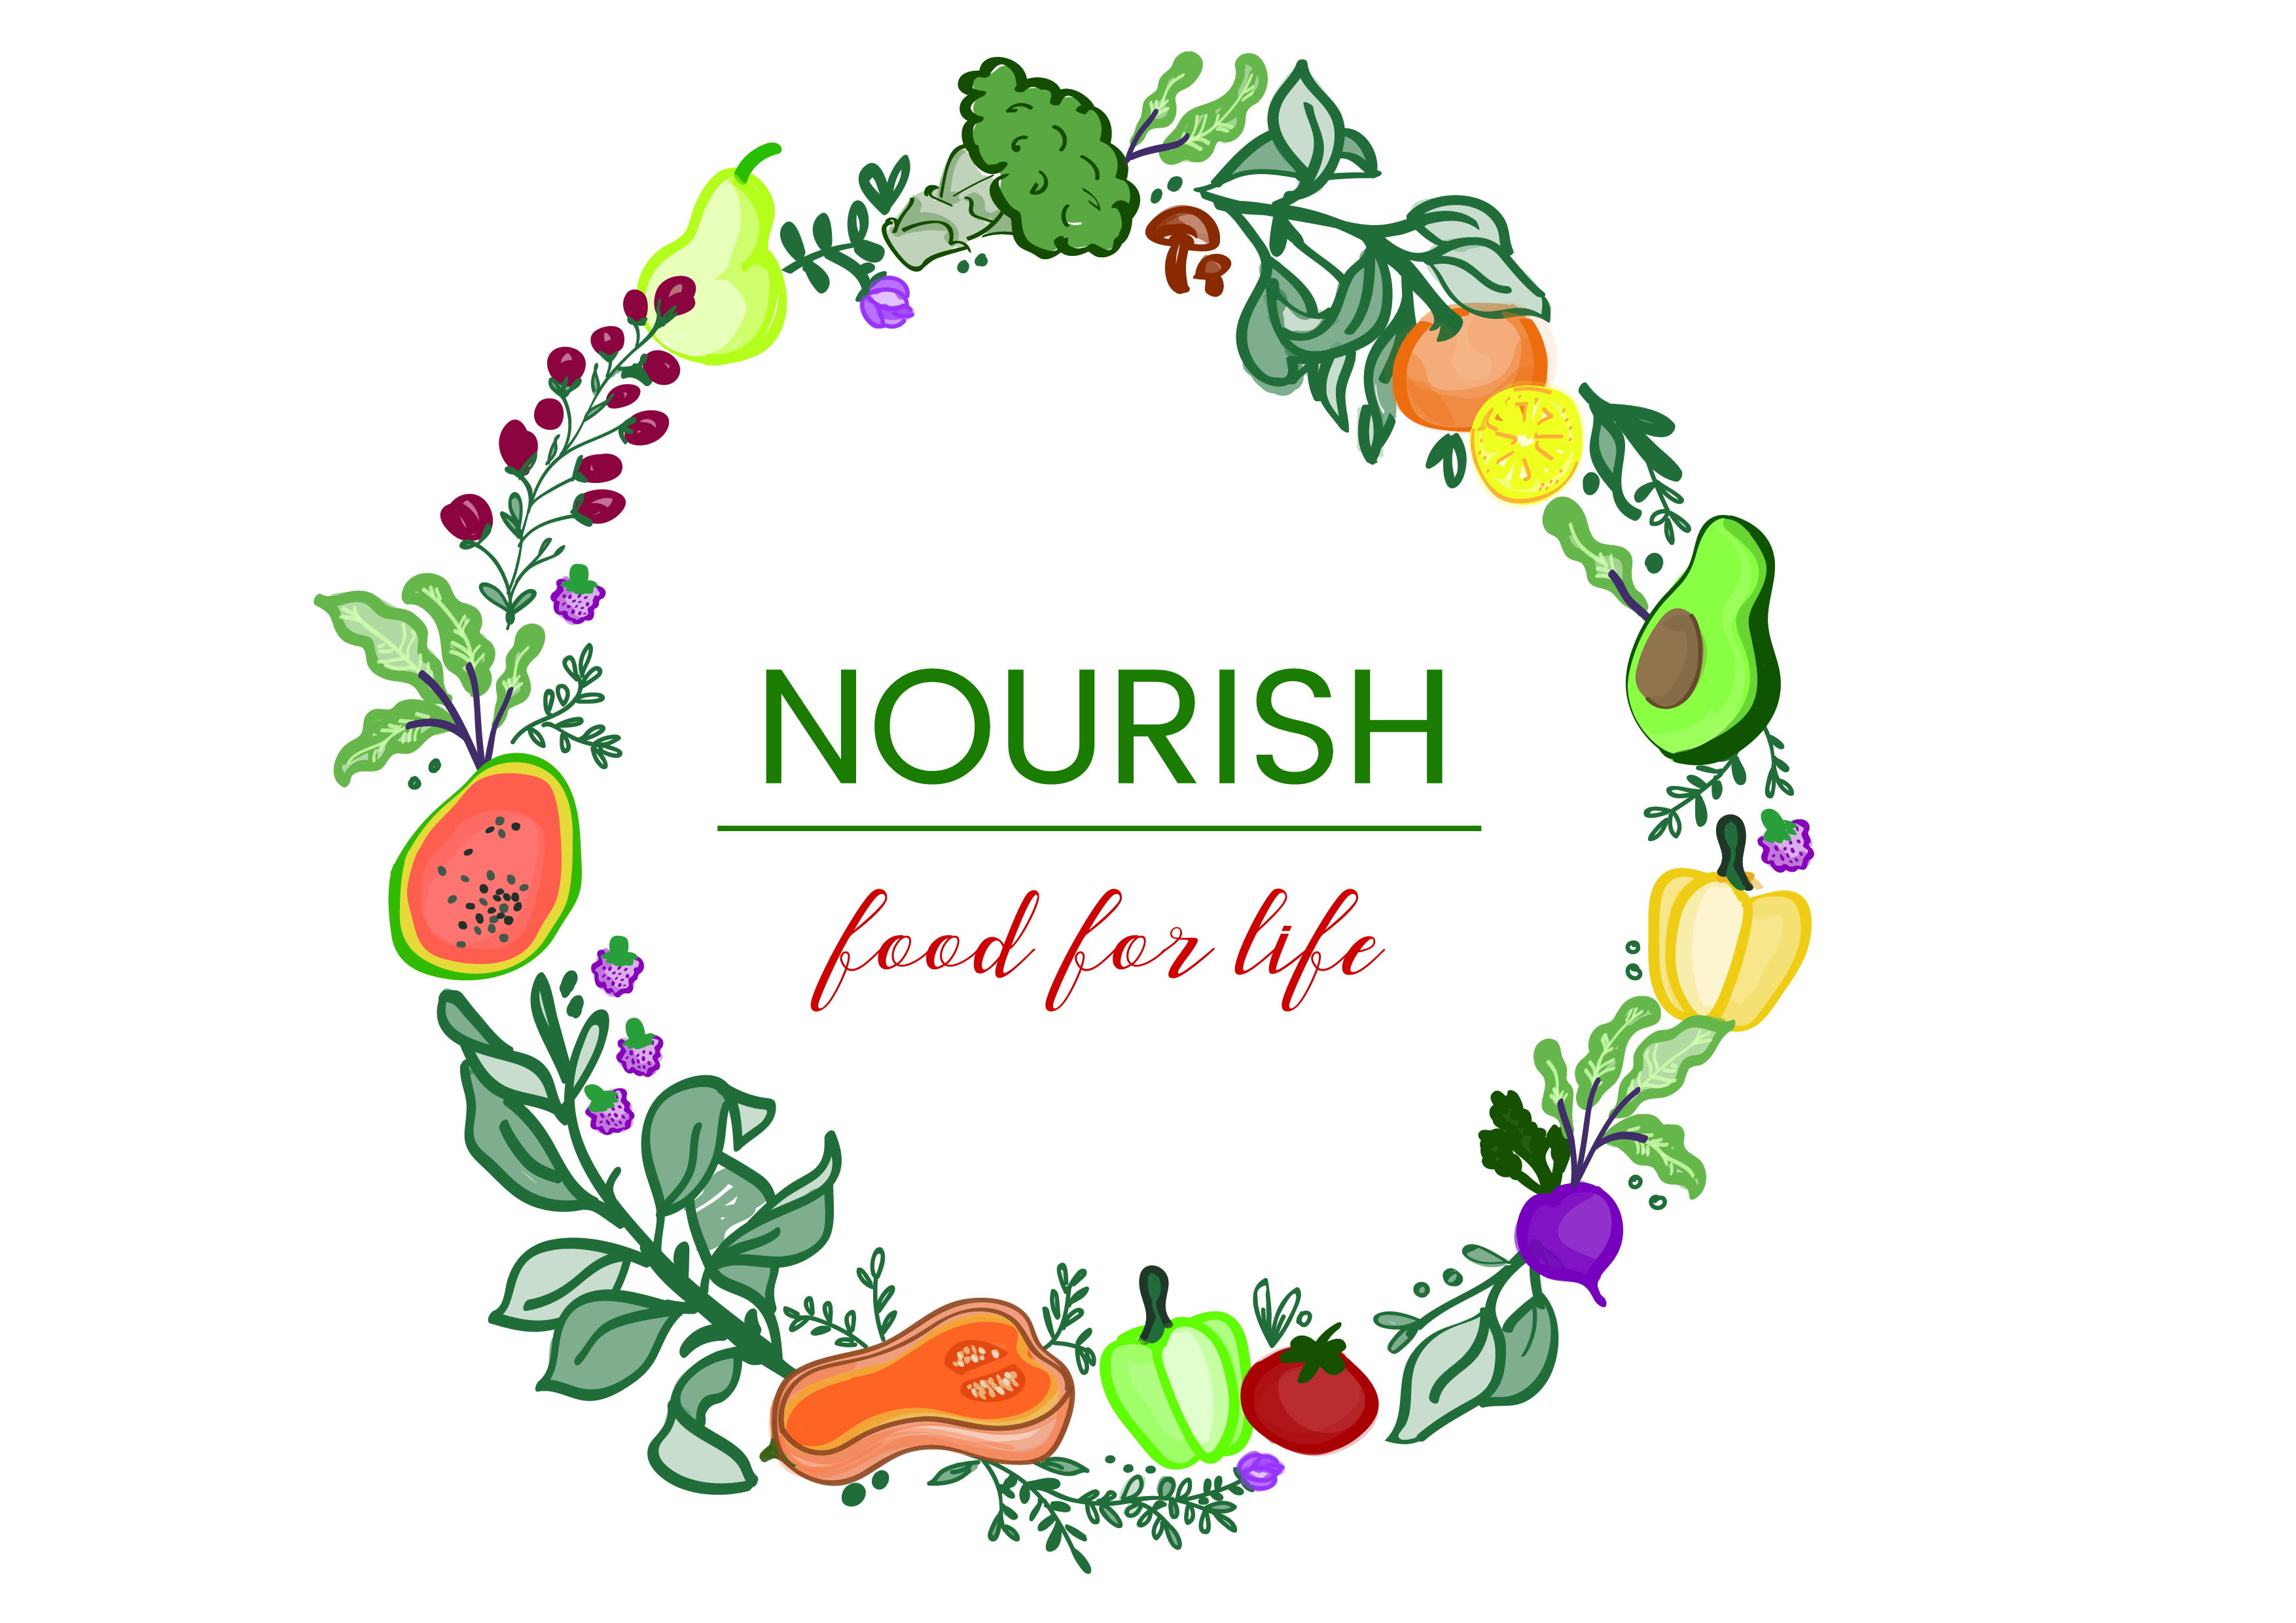 Nourish – Food for Life